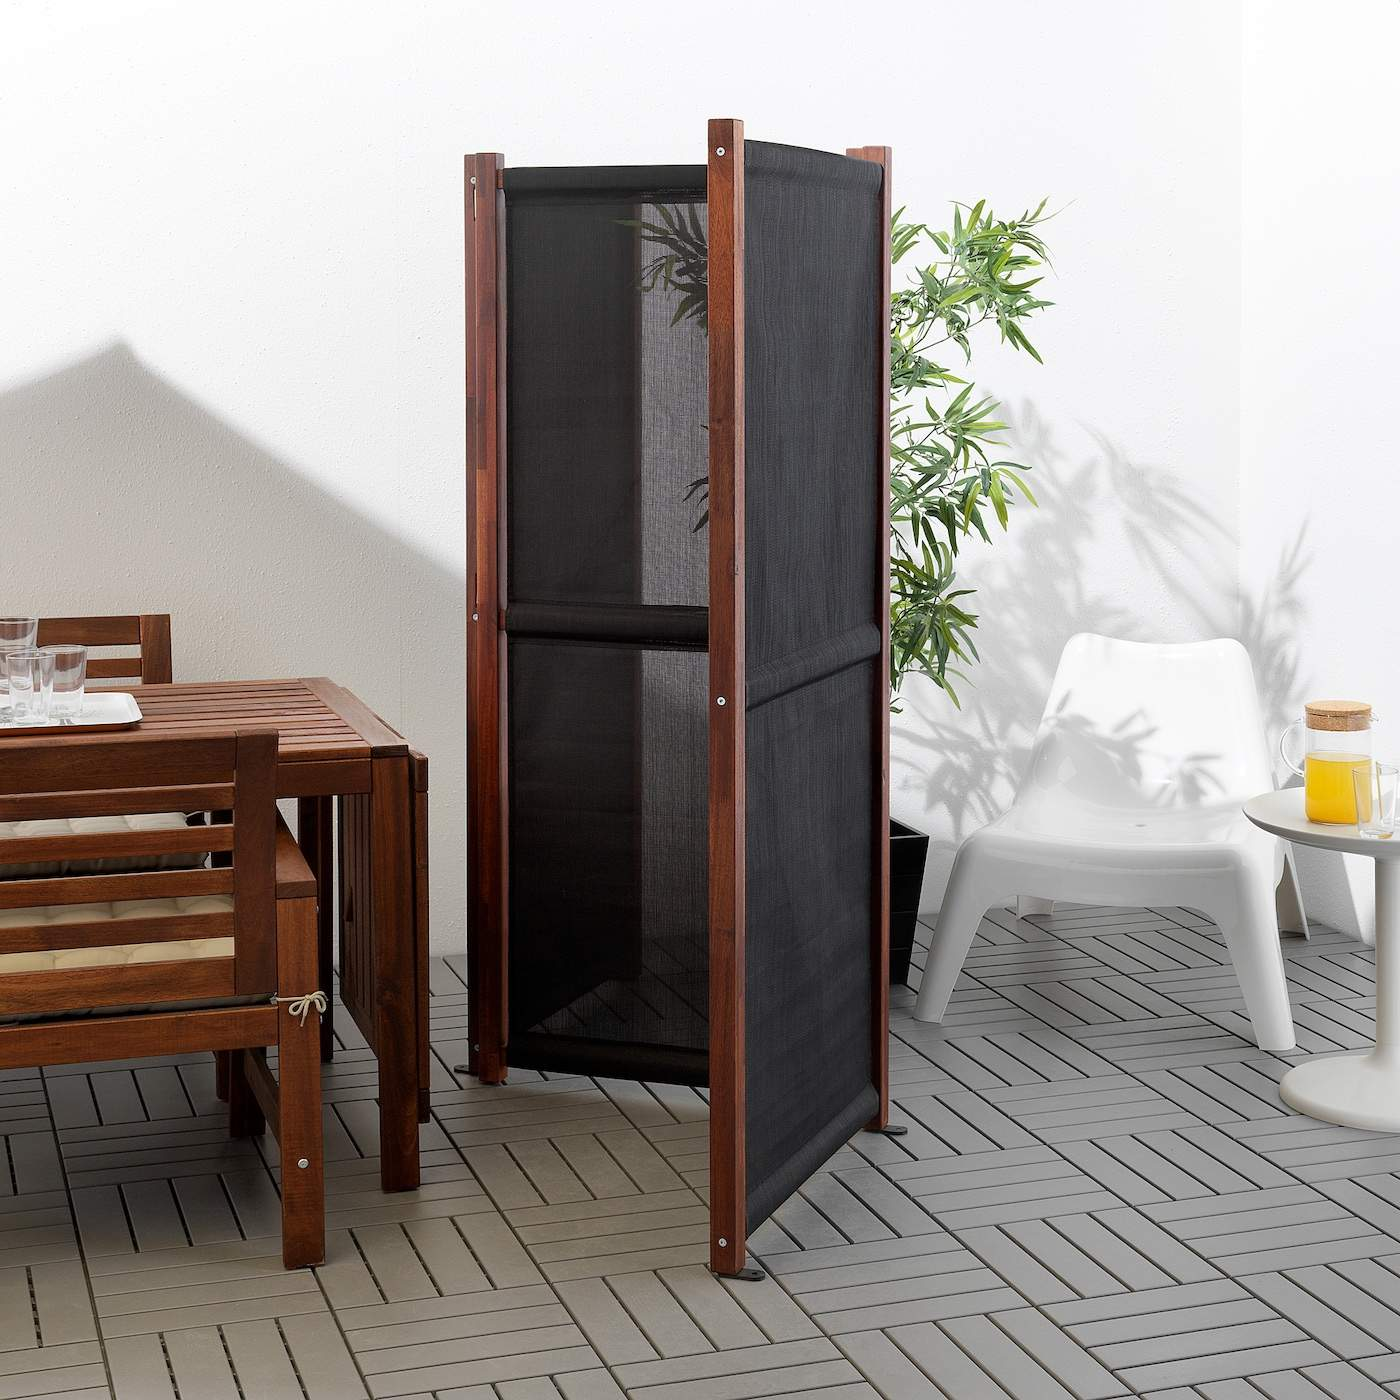 slaettoe privacy screen outdoor black brown stained PE S5 JPG